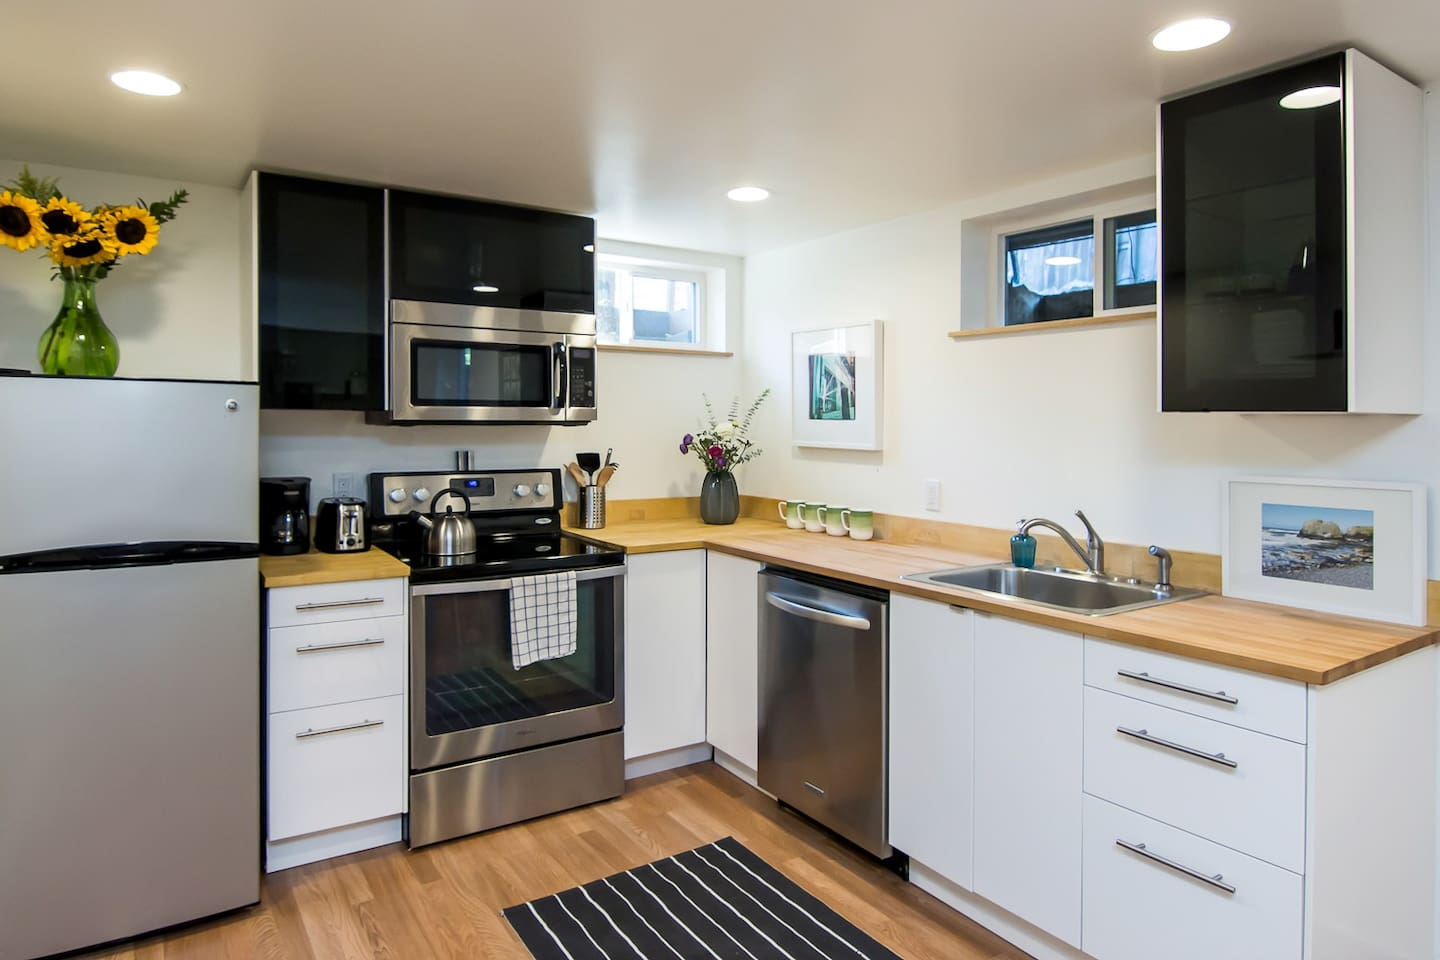 Brand new modern kitchen. Butcher block counter tops and all new stainless steal appliances.